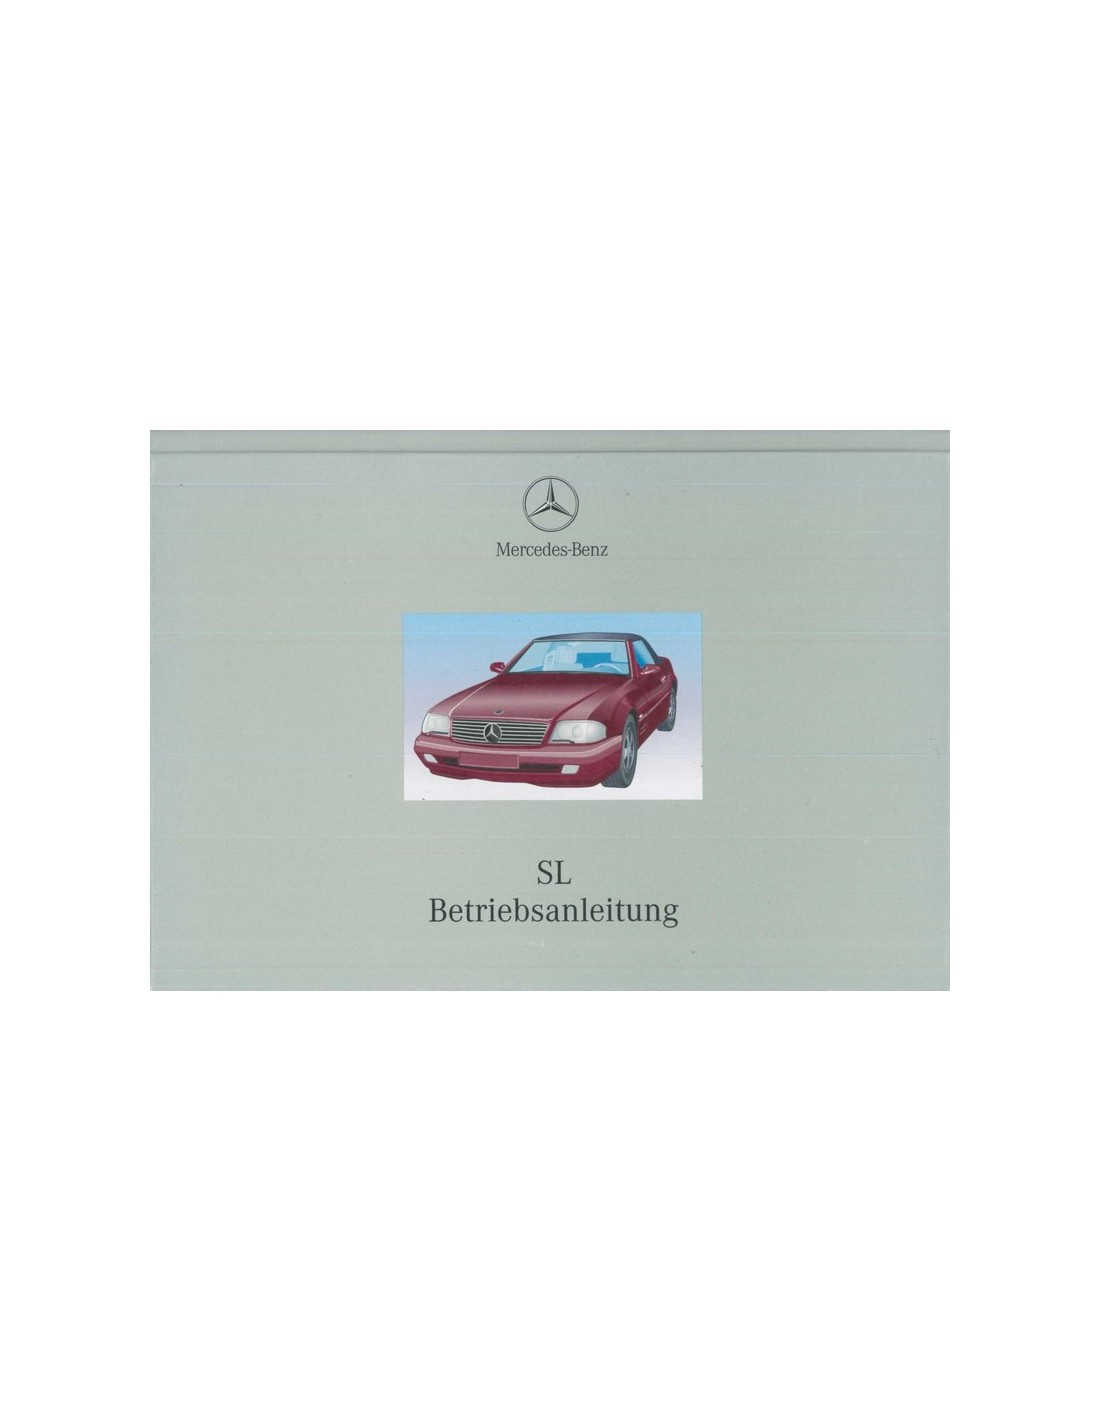 1999 mercedes benz sl class owners manual handbook deutsch for 2003 mercedes benz sl500 owners manual